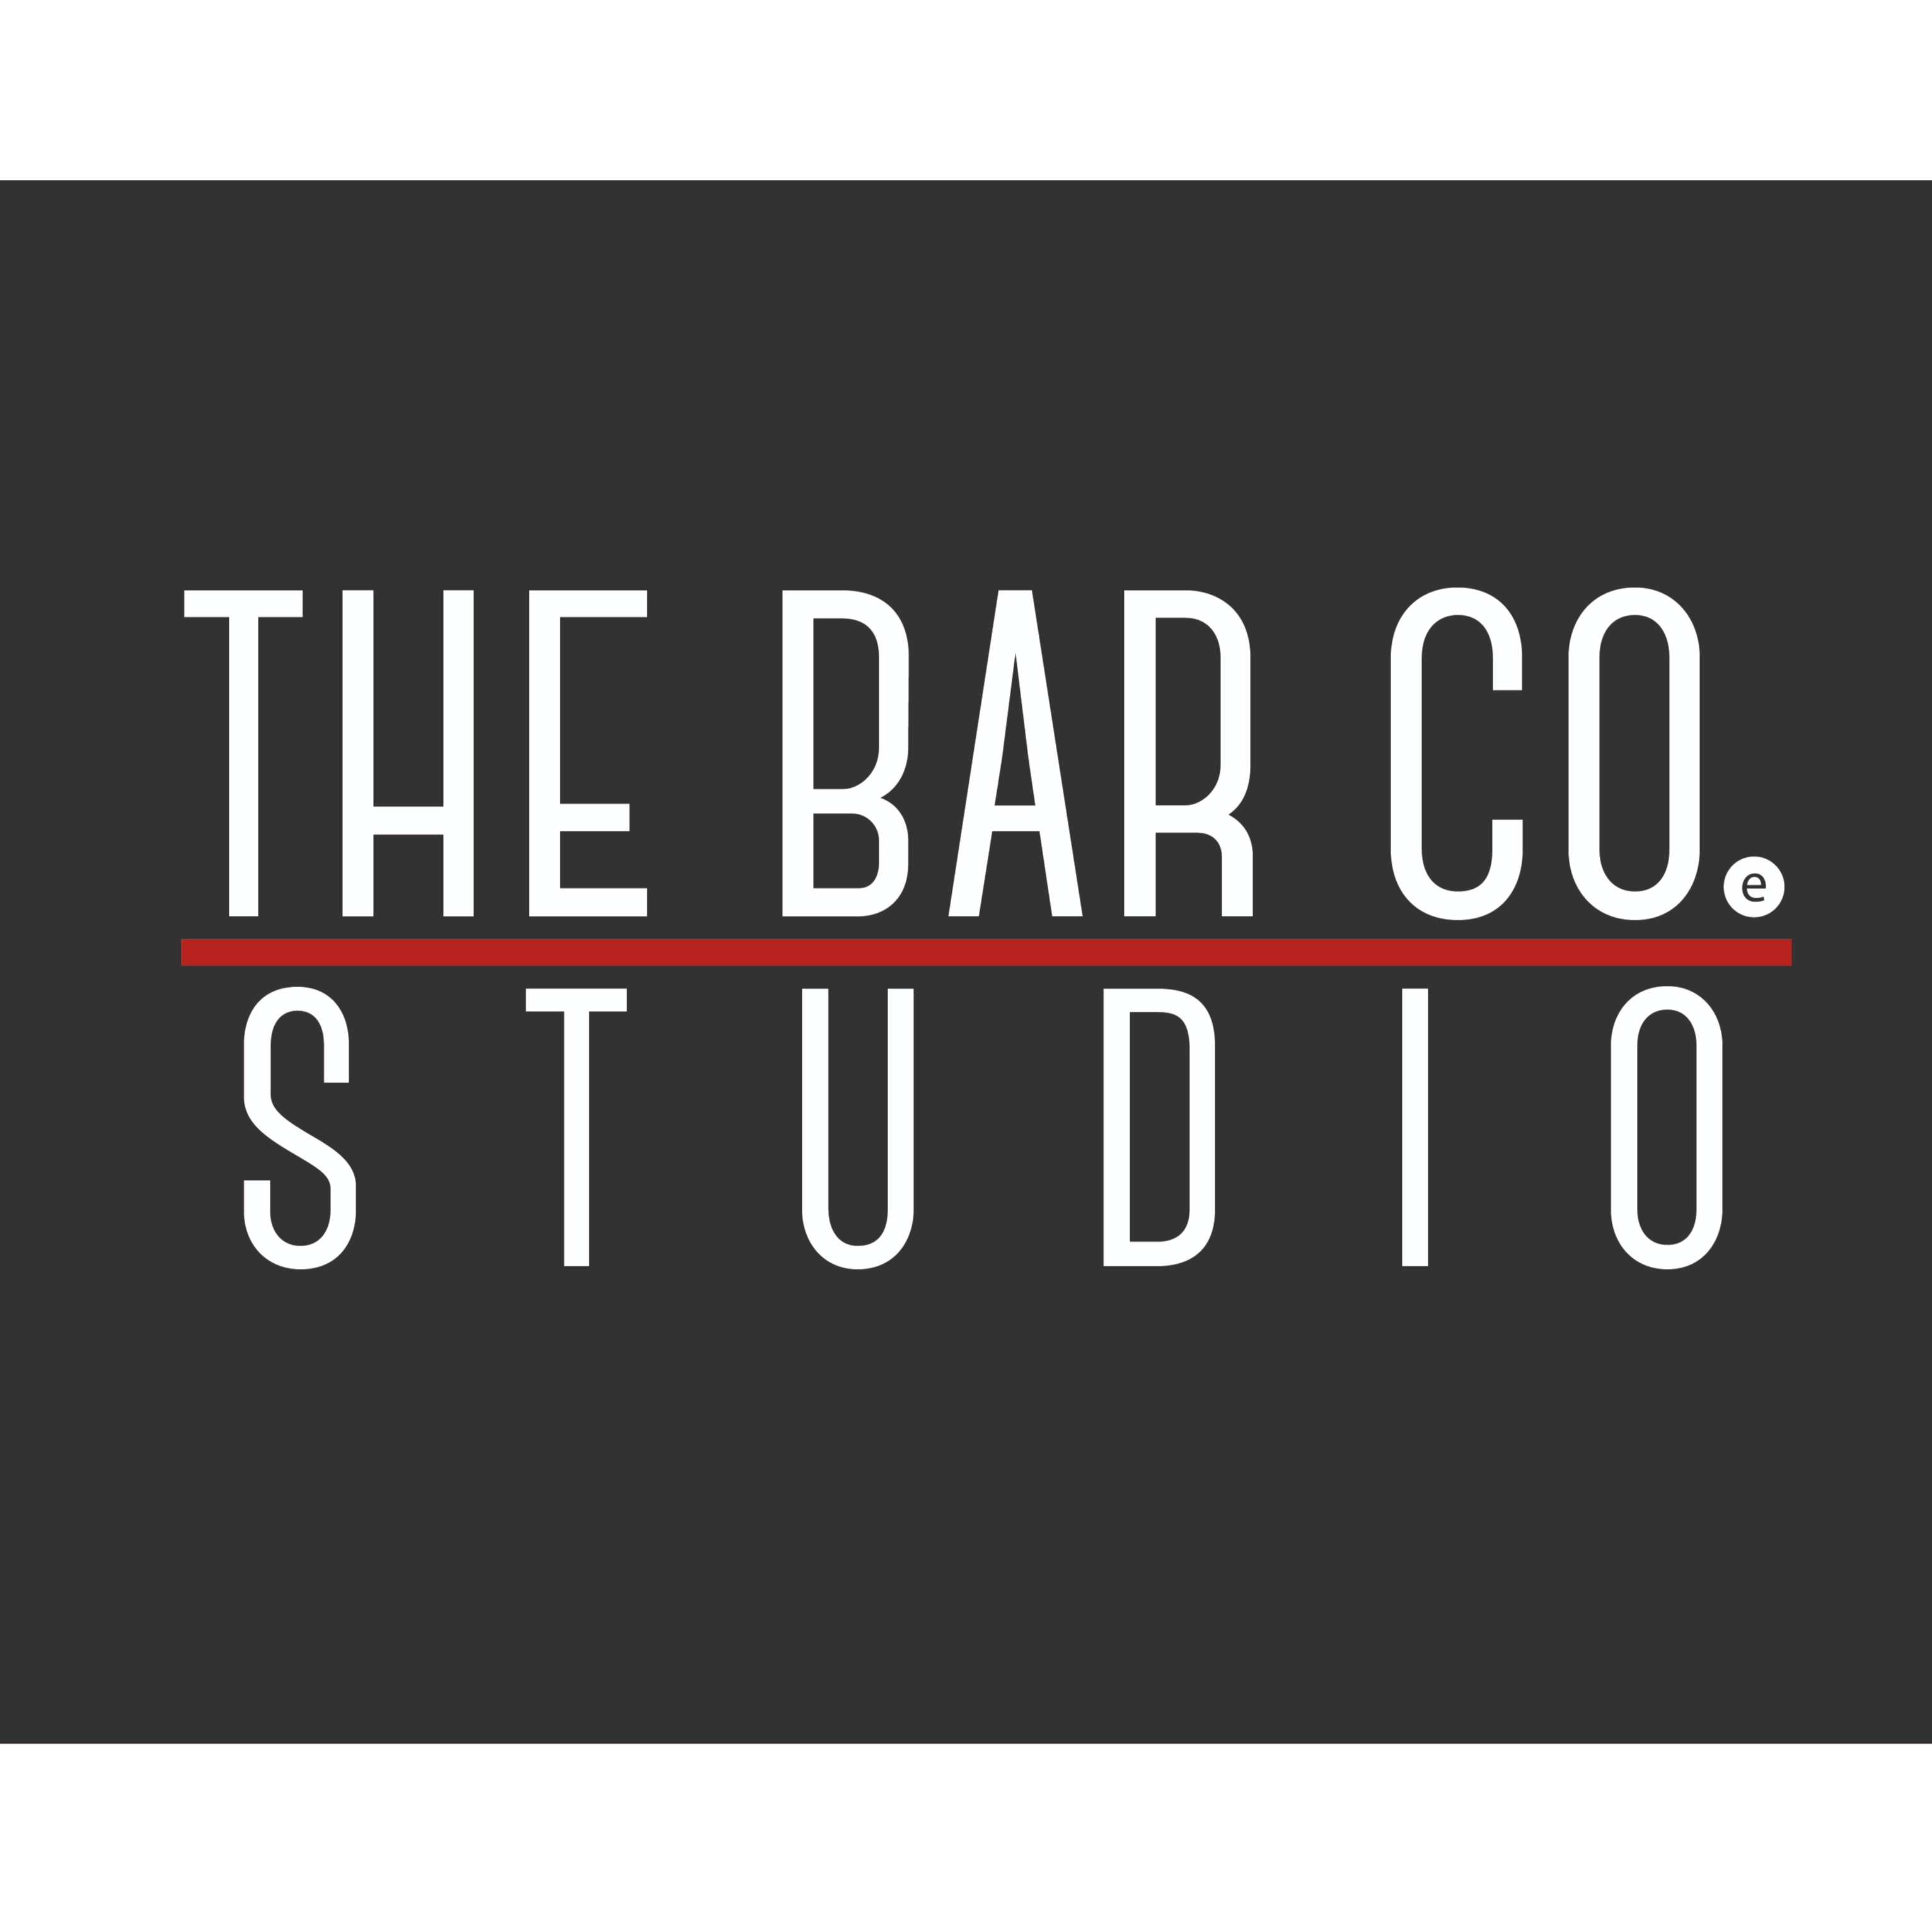 The BarCoe Studio